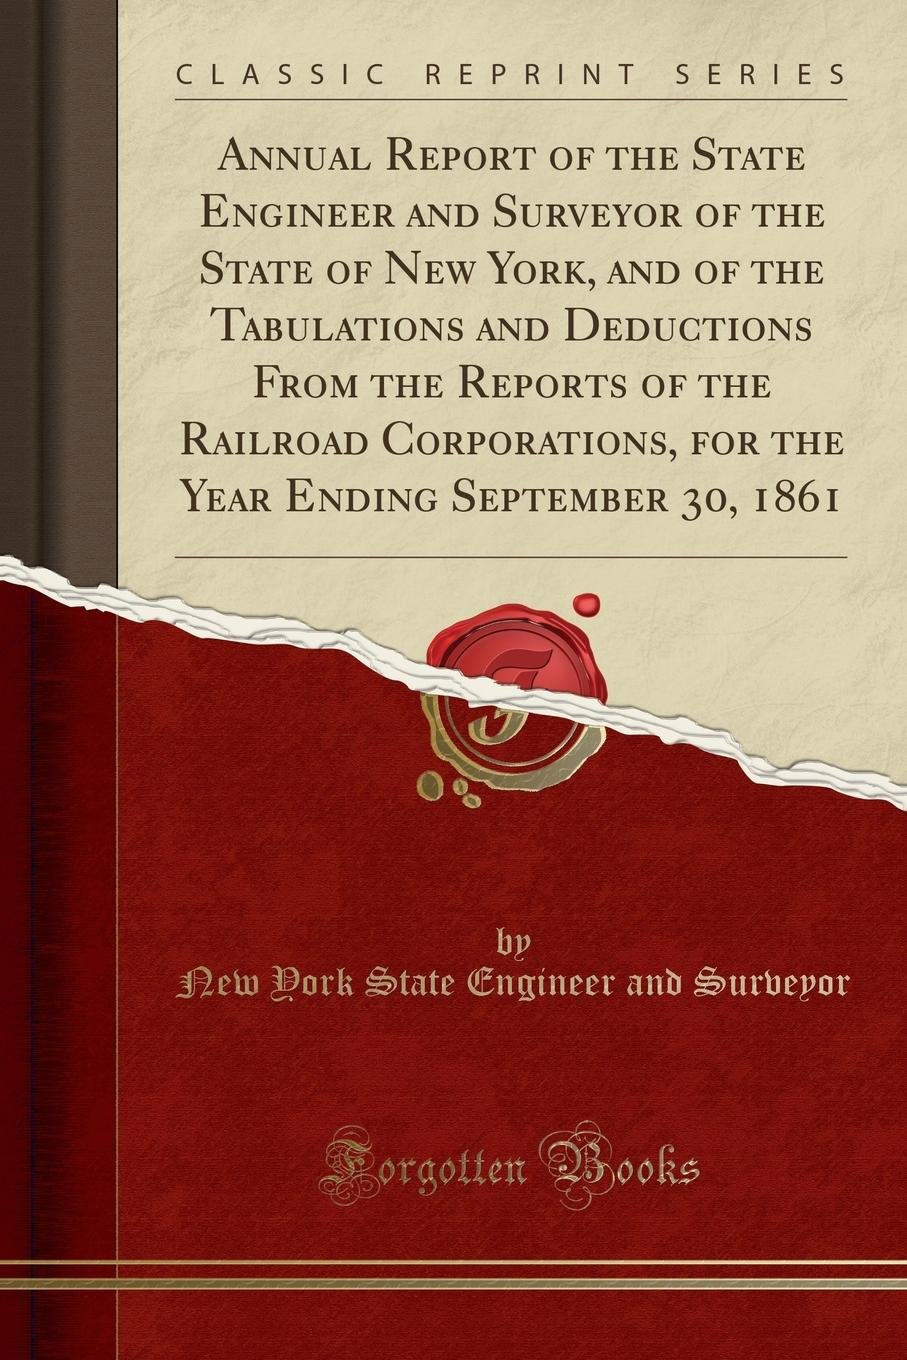 Annual Report of the State Engineer and Surveyor of the State of New York, and of the Tabulations and Deductions From the Reports of the Railroad ... Ending September 30, 1861 (Classic Reprint) ebook